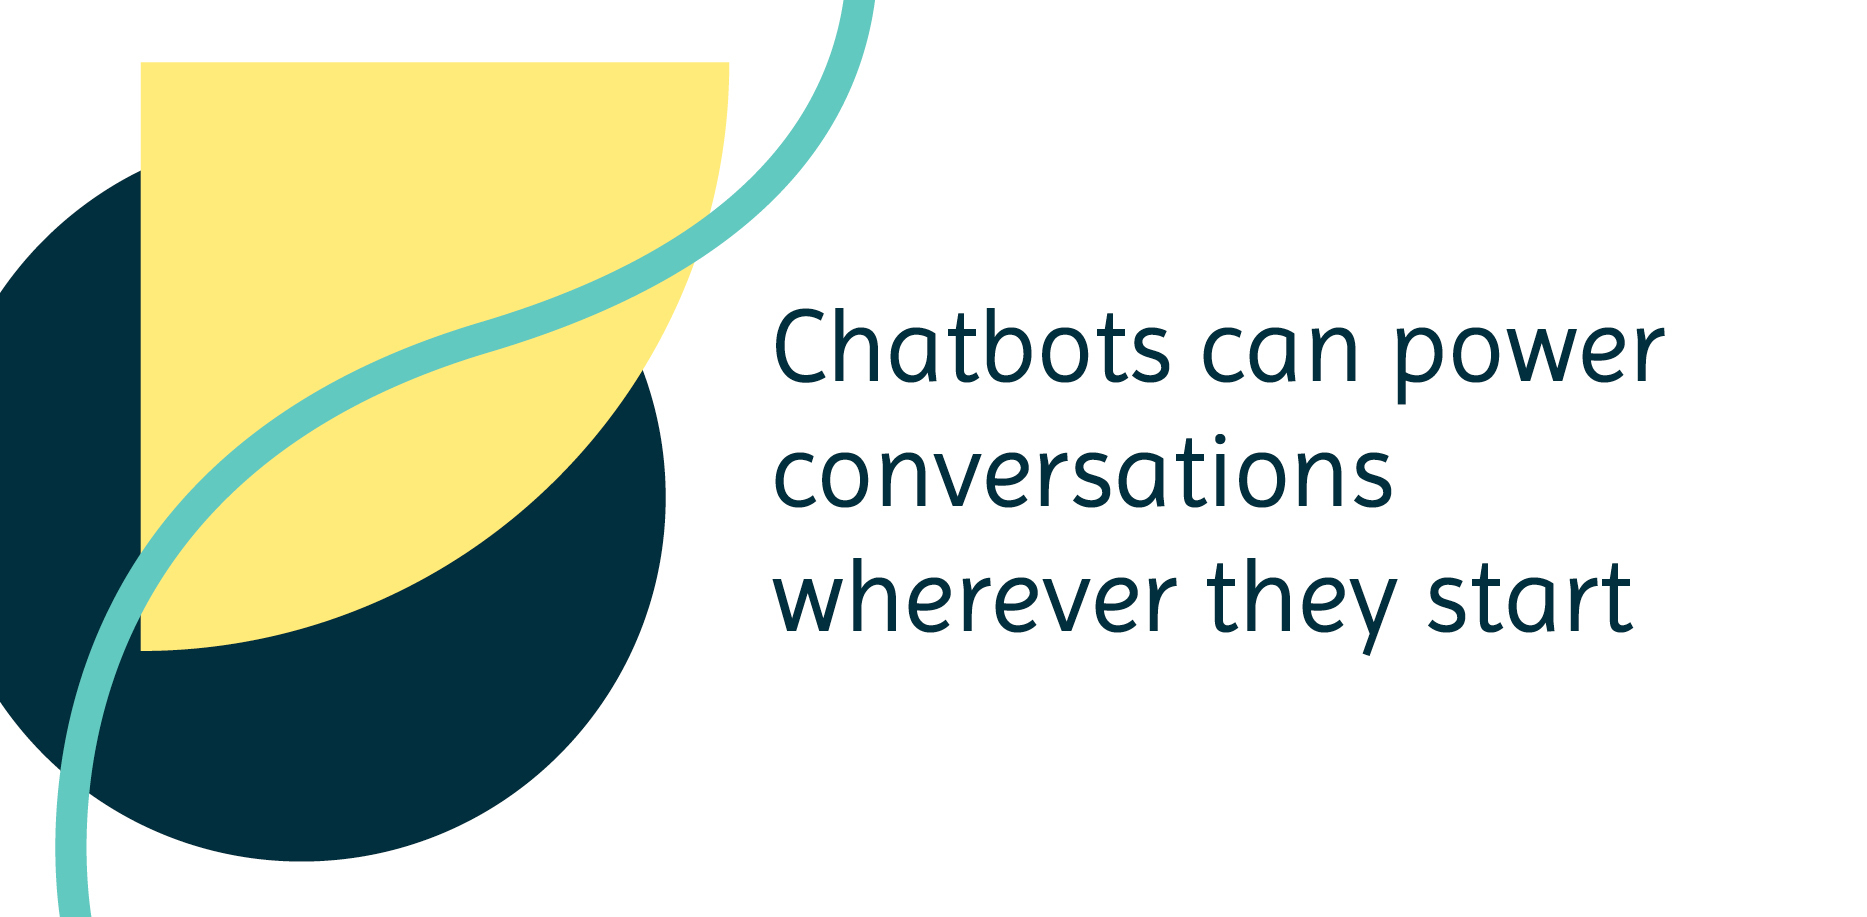 Chatbots can power conversations wherever they start